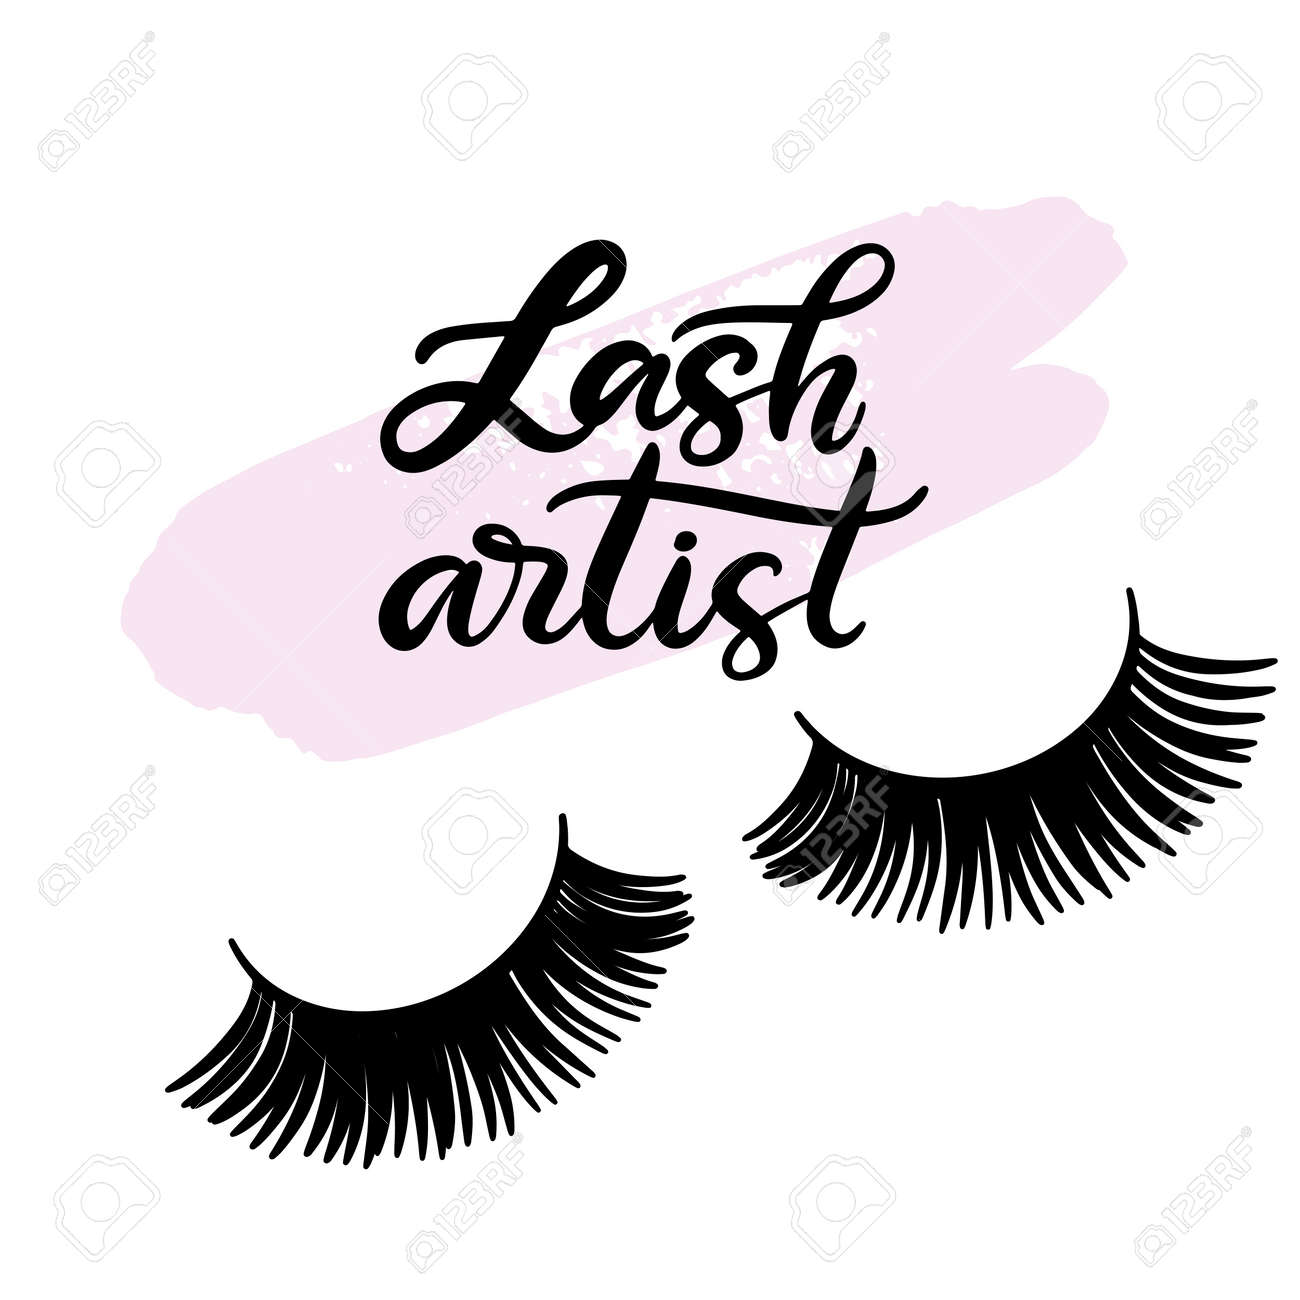 31f8eb1813d Lashes lettering vector illustration for beauty salon, fashion blog, logo,  false eyelashes extensions